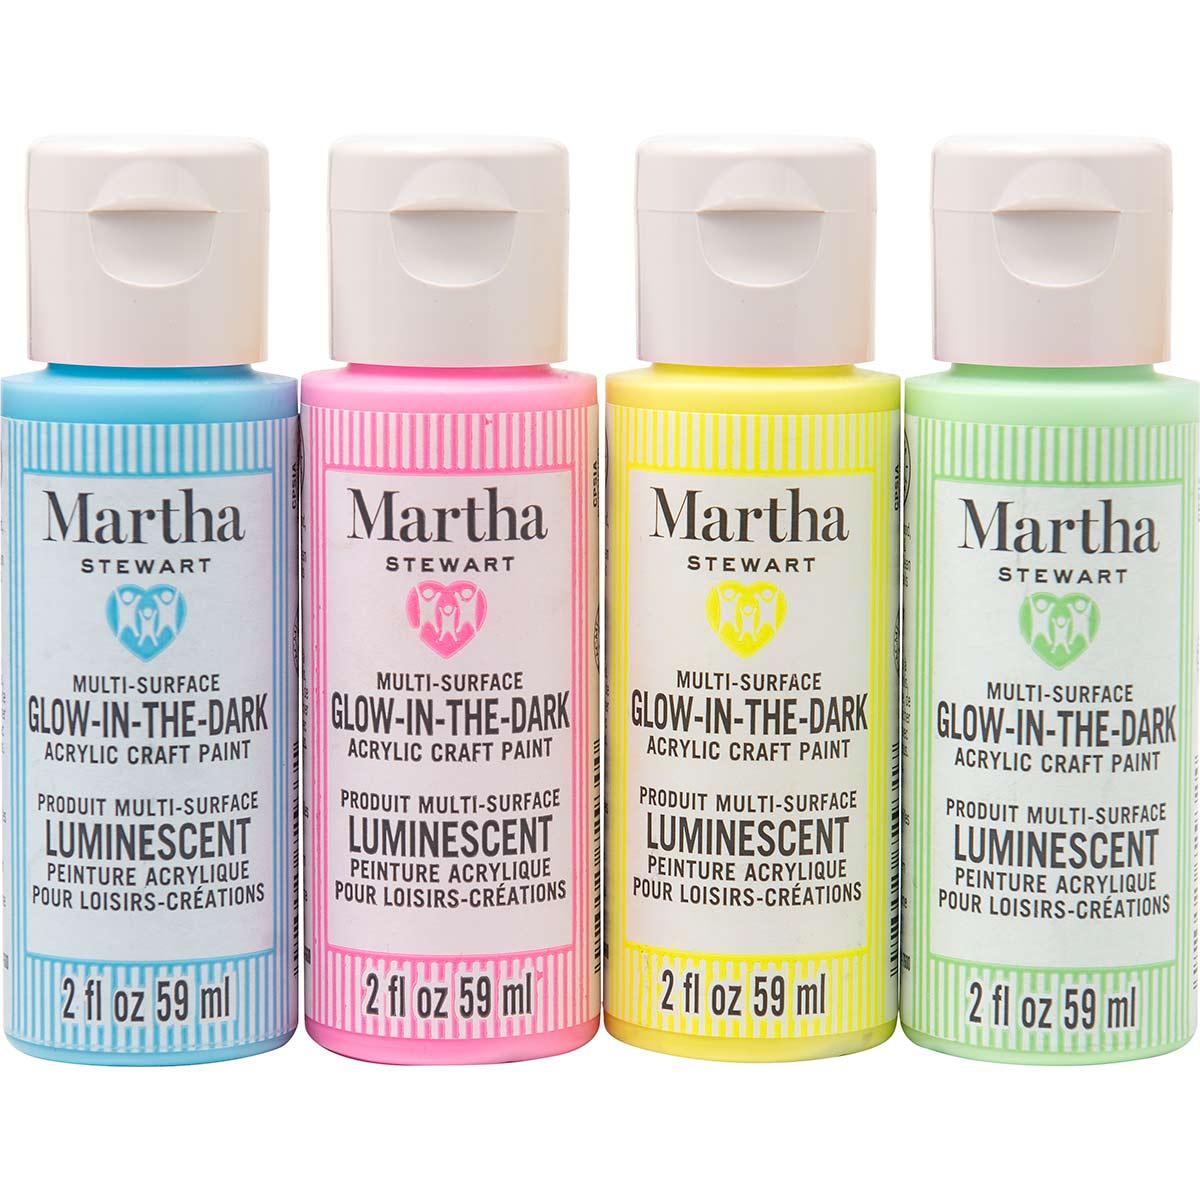 Martha Stewart ® Family Friendly Multi-Surface Glow-in-the-Dark Acrylic Craft Paint 4-Color Set - MS